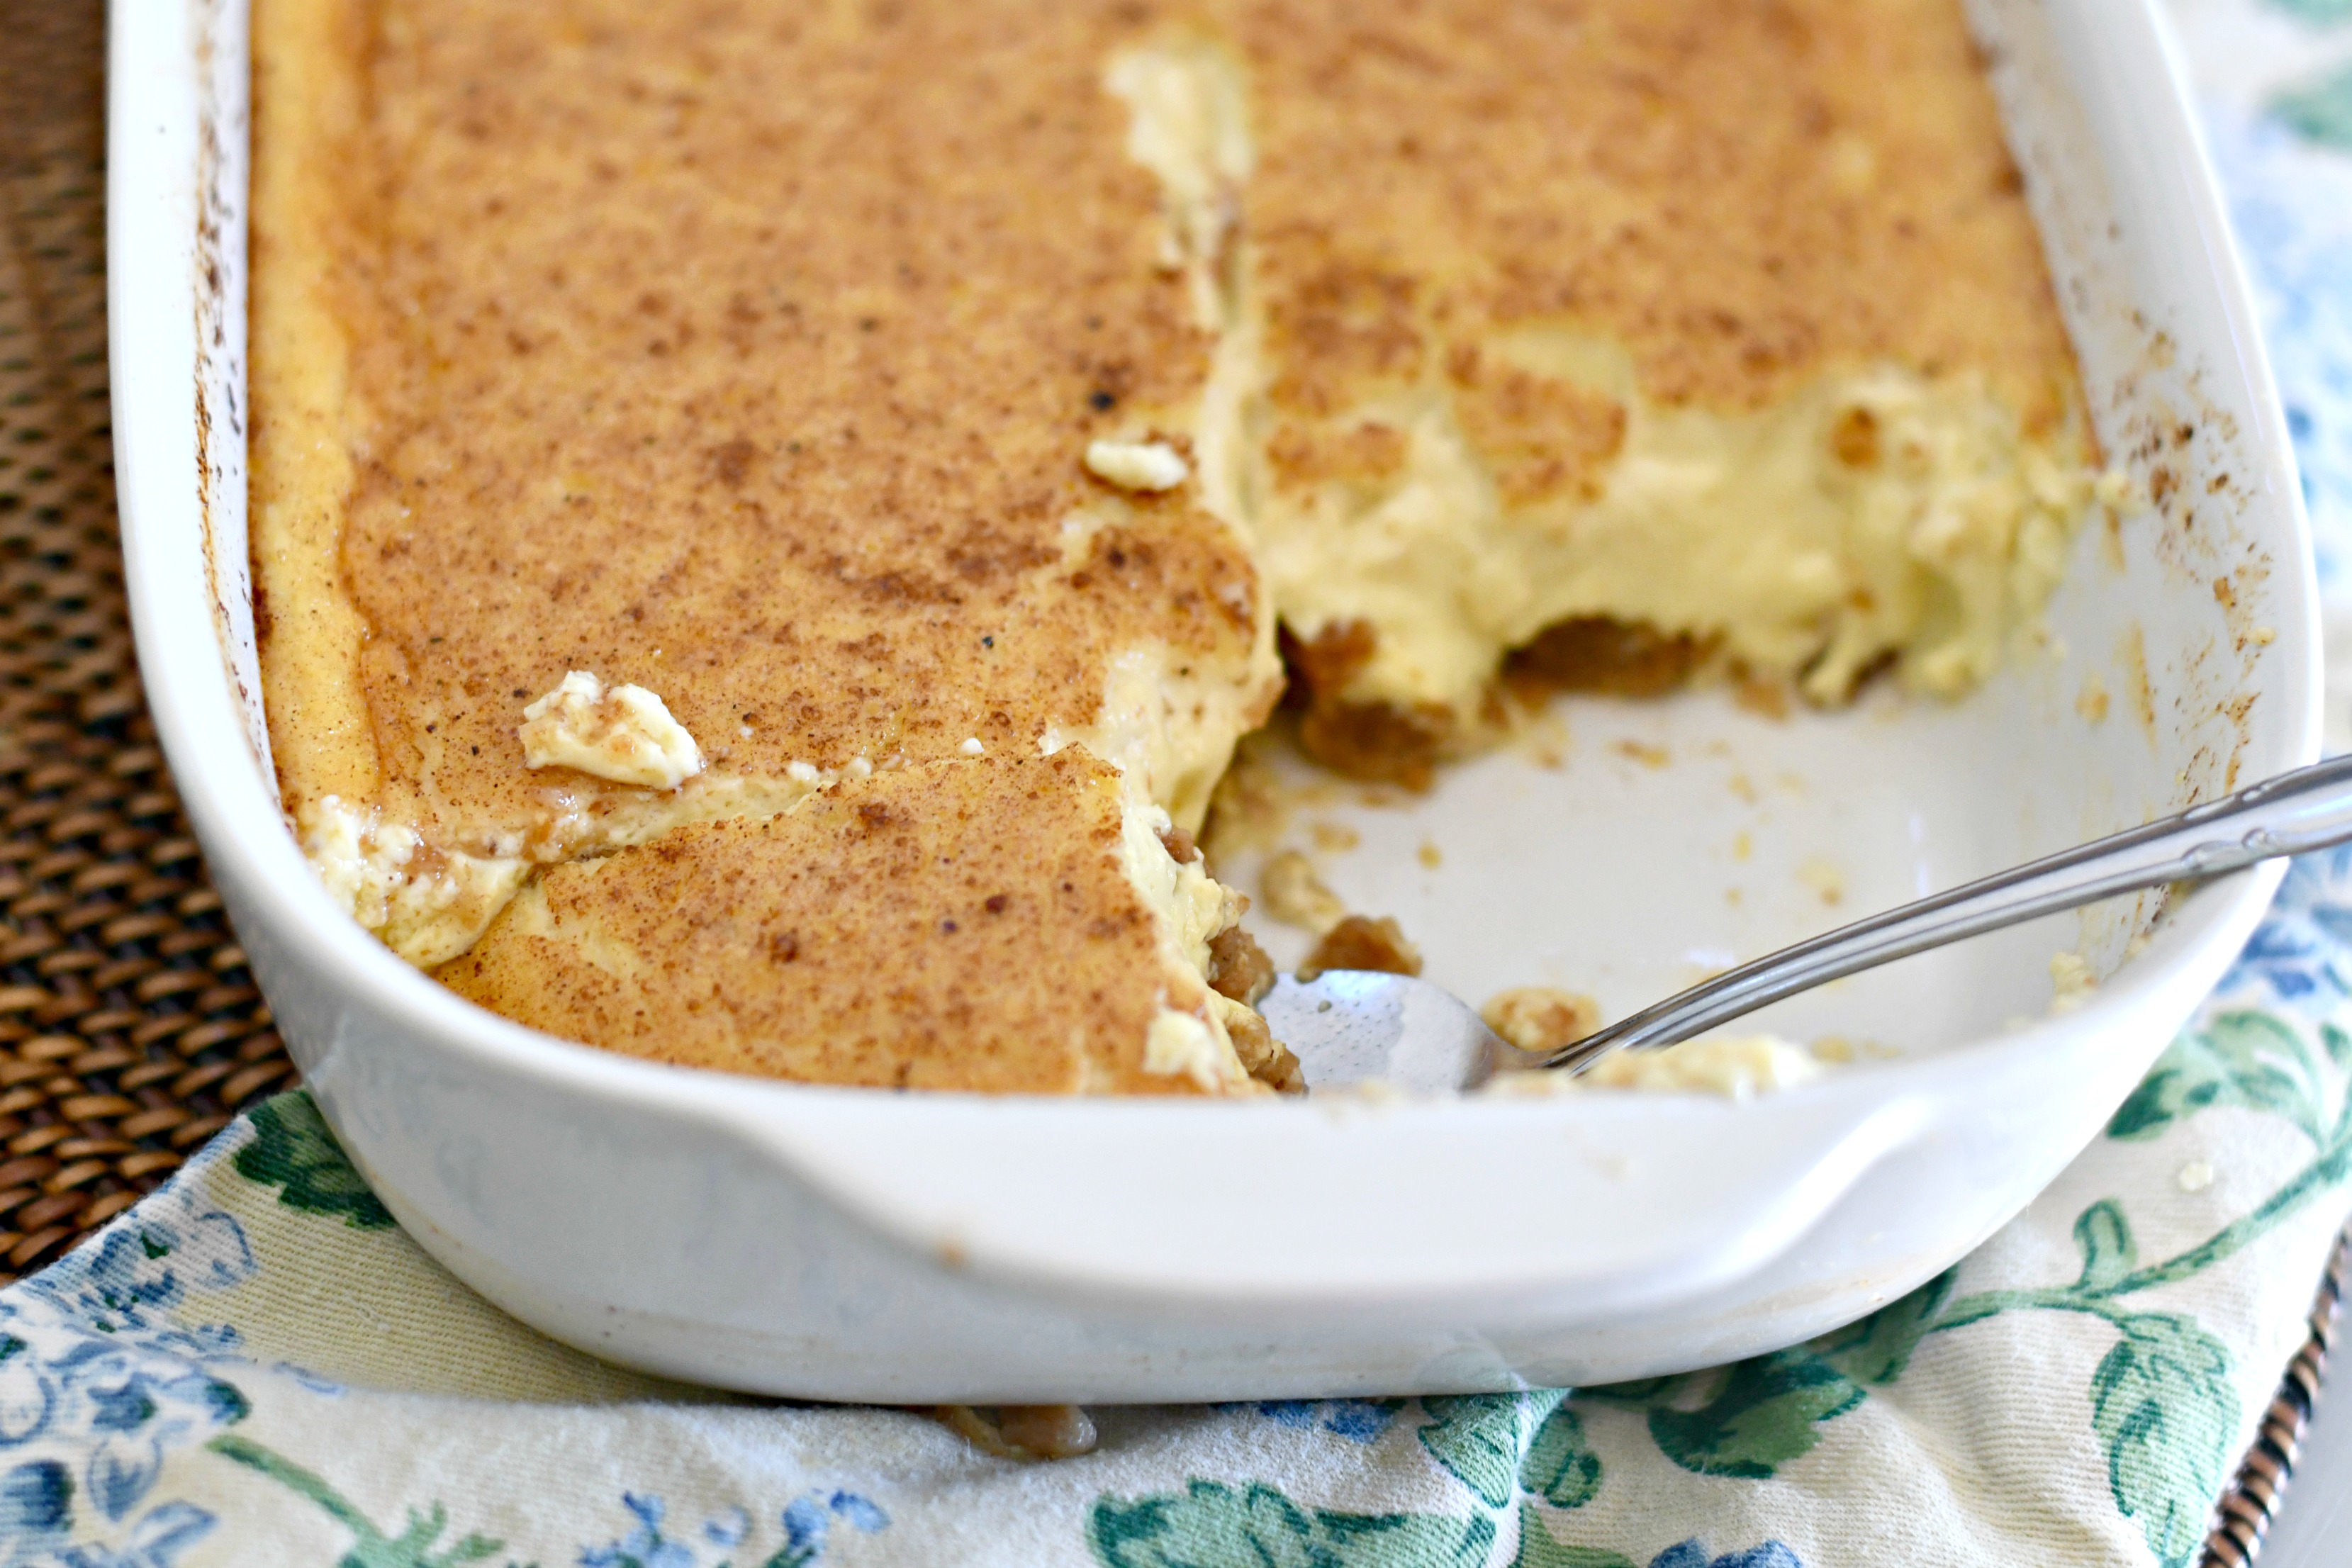 Classic Grape-Nuts Pudding closeup with a serving gone to show the pudding inside